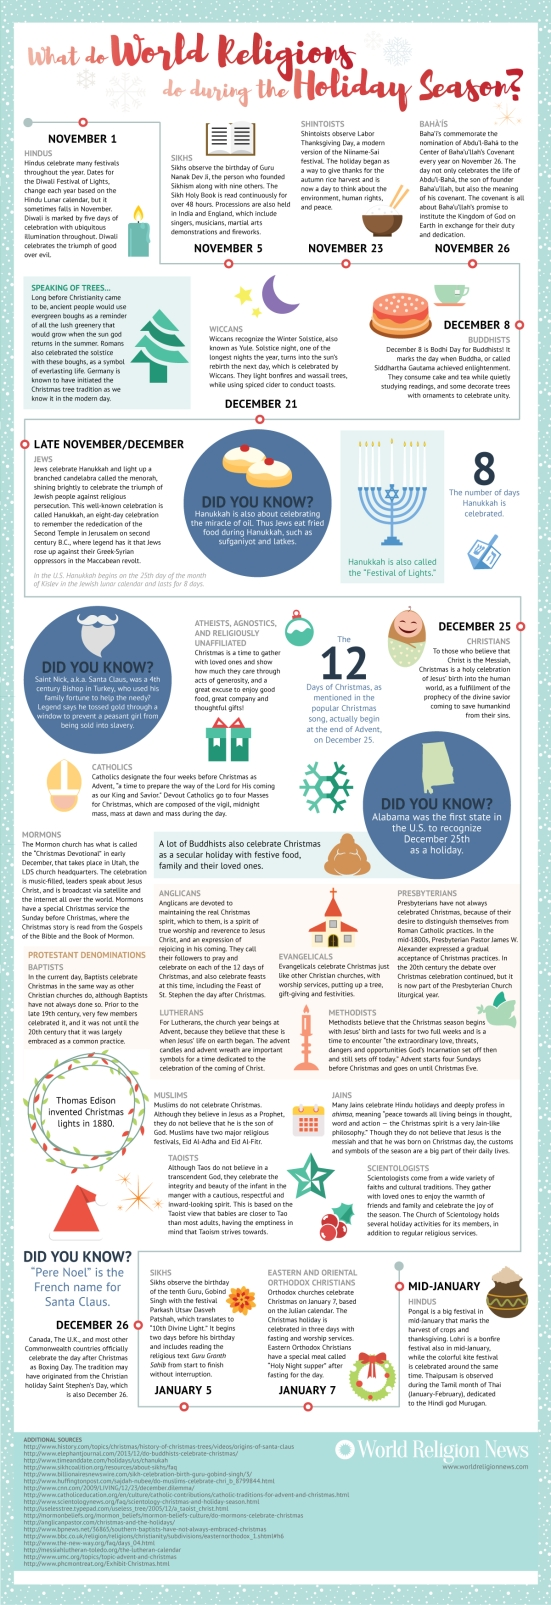 world-religions-tree-infographic-discover-what-world-religions-do-during-the-holiday-season-in-this-information-packed-infographic-which-provides-a-quick-snapshot-on-the-holidays-